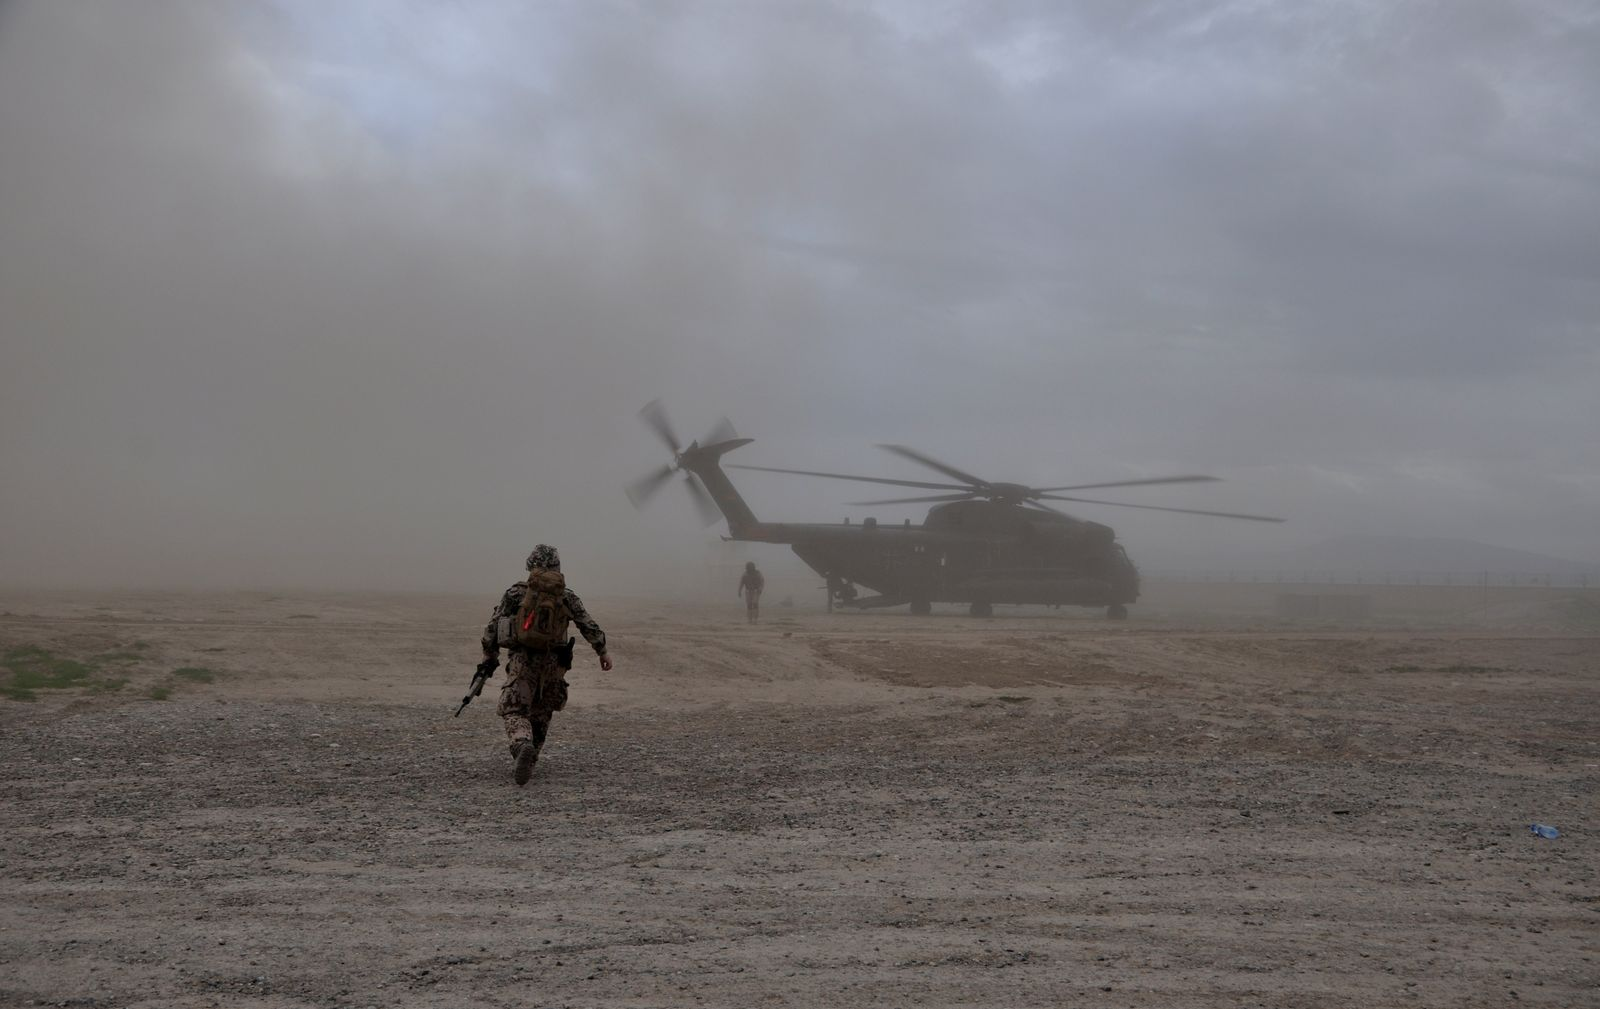 A soldier walks towards a CH-53 helicopter in Kunduz